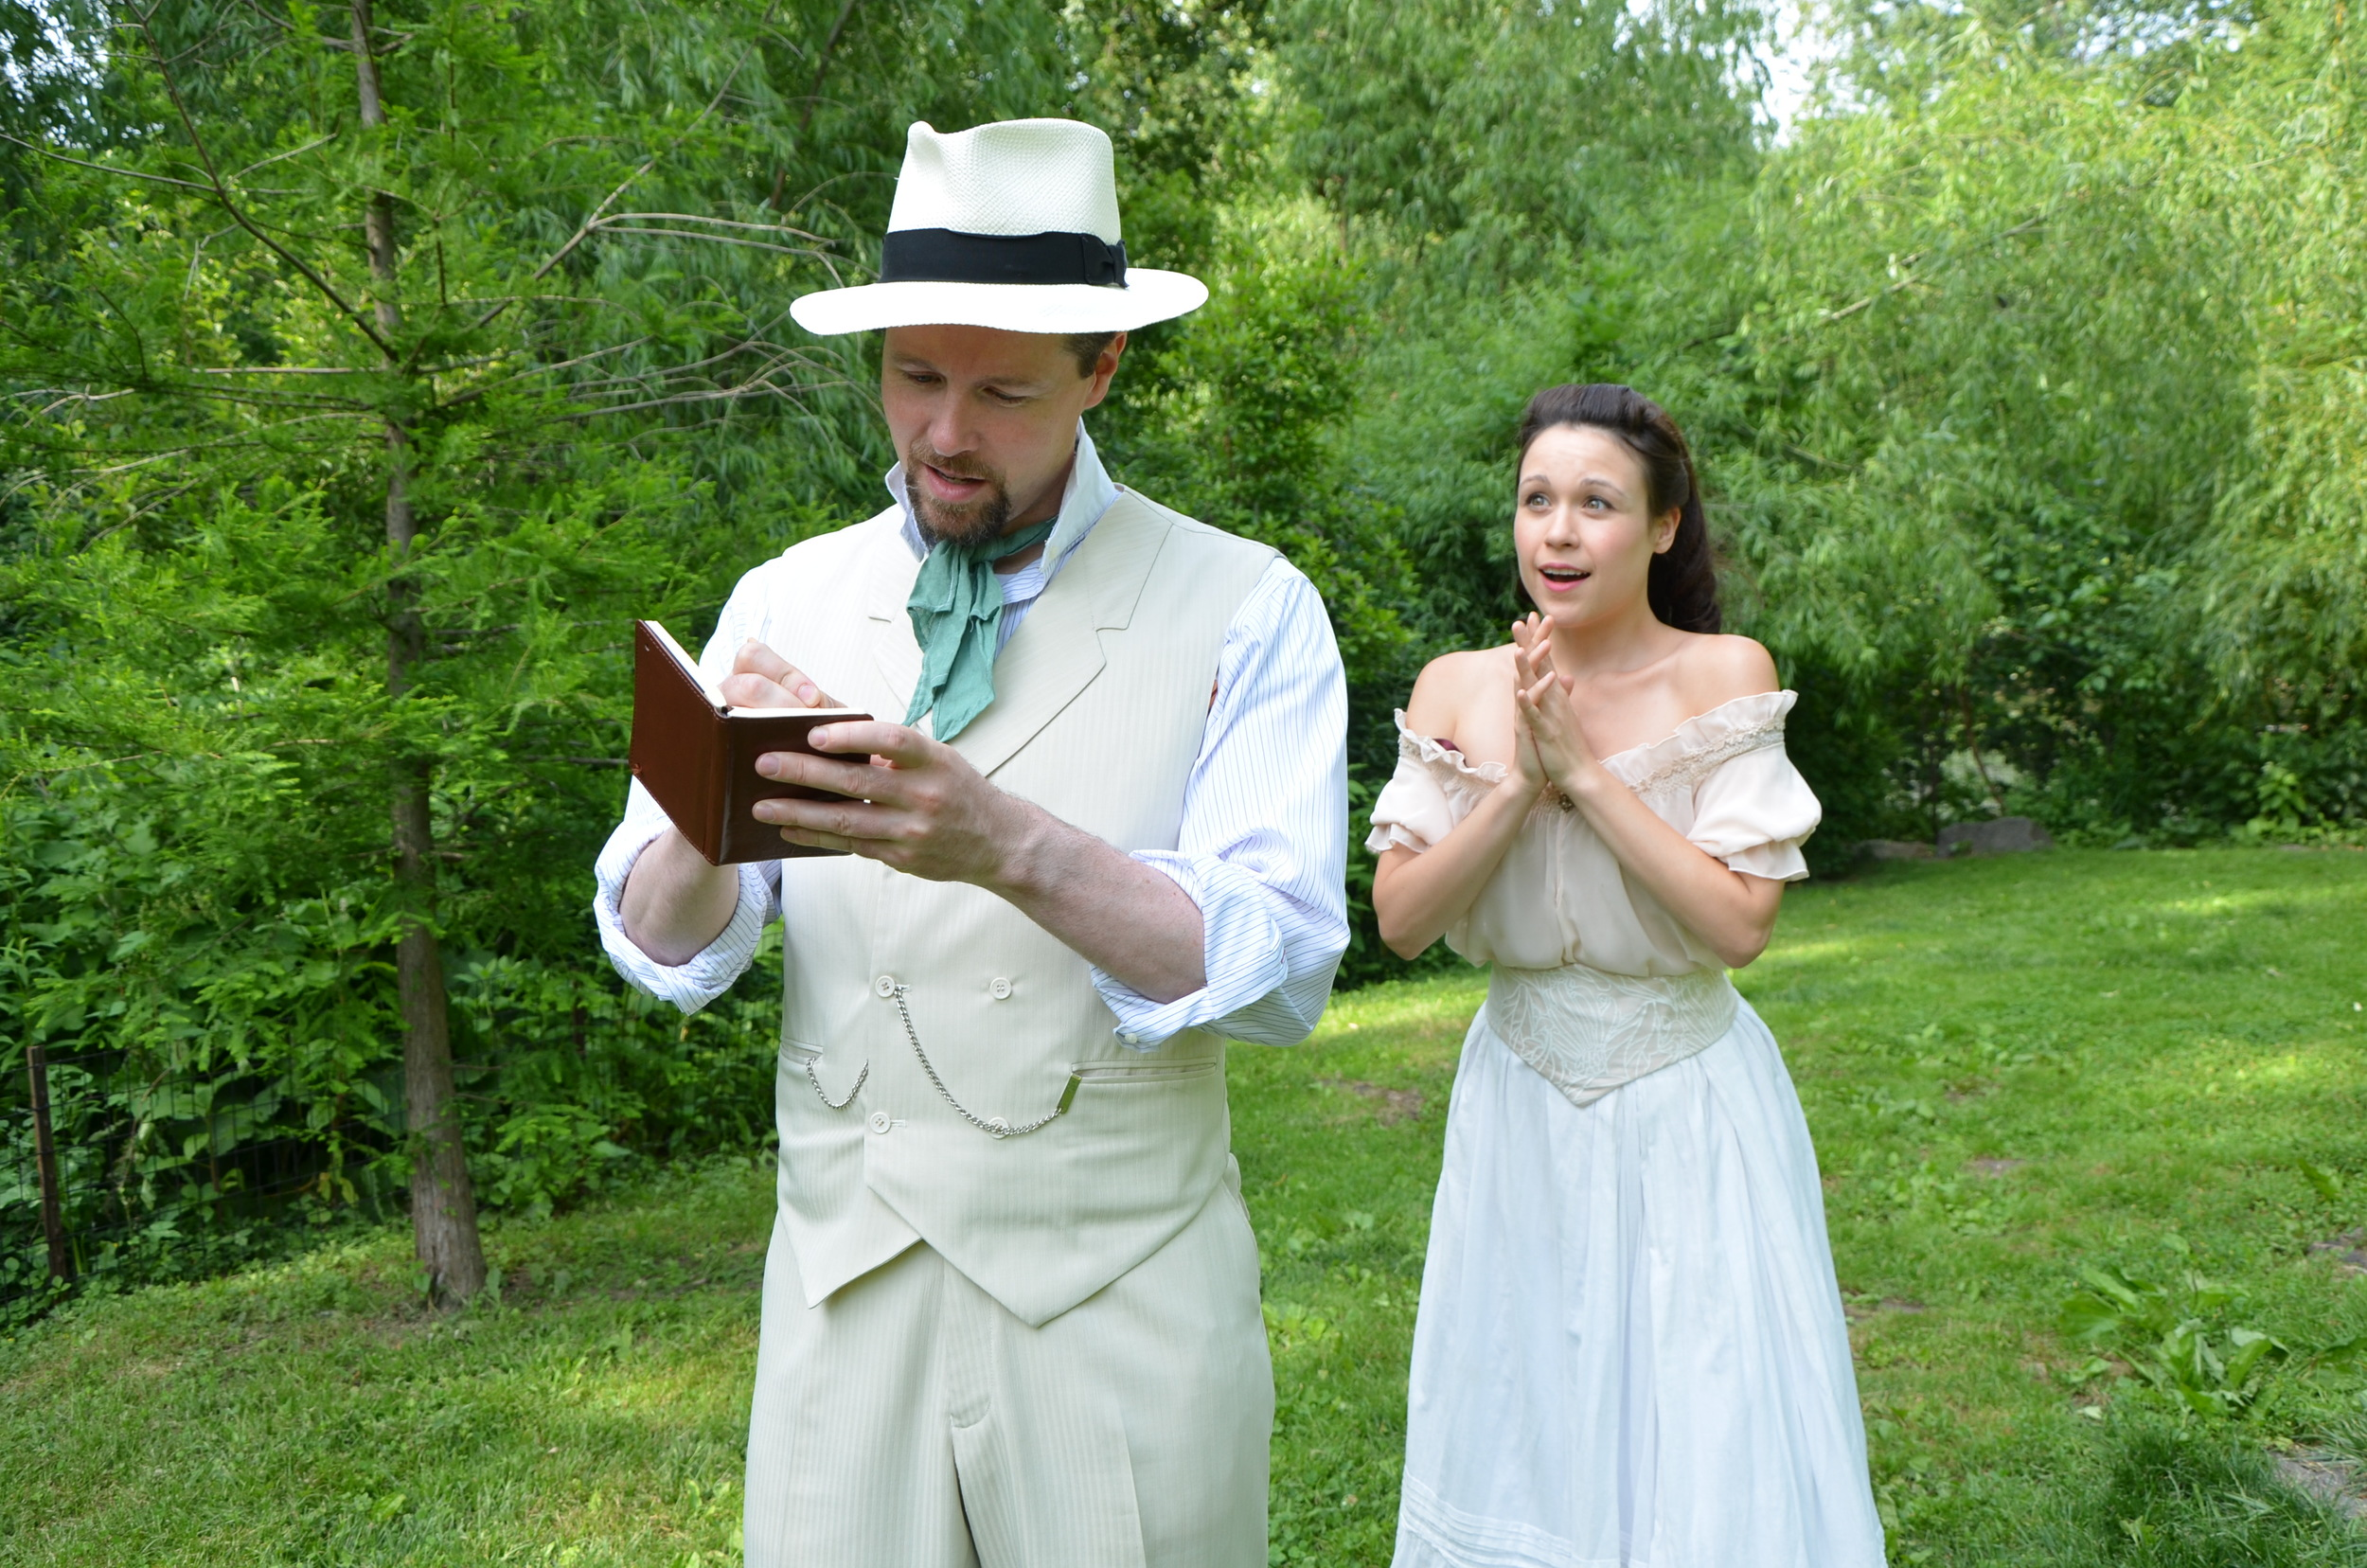 New York Classical free theatre in Central Park The Seagull Anton Chekhov